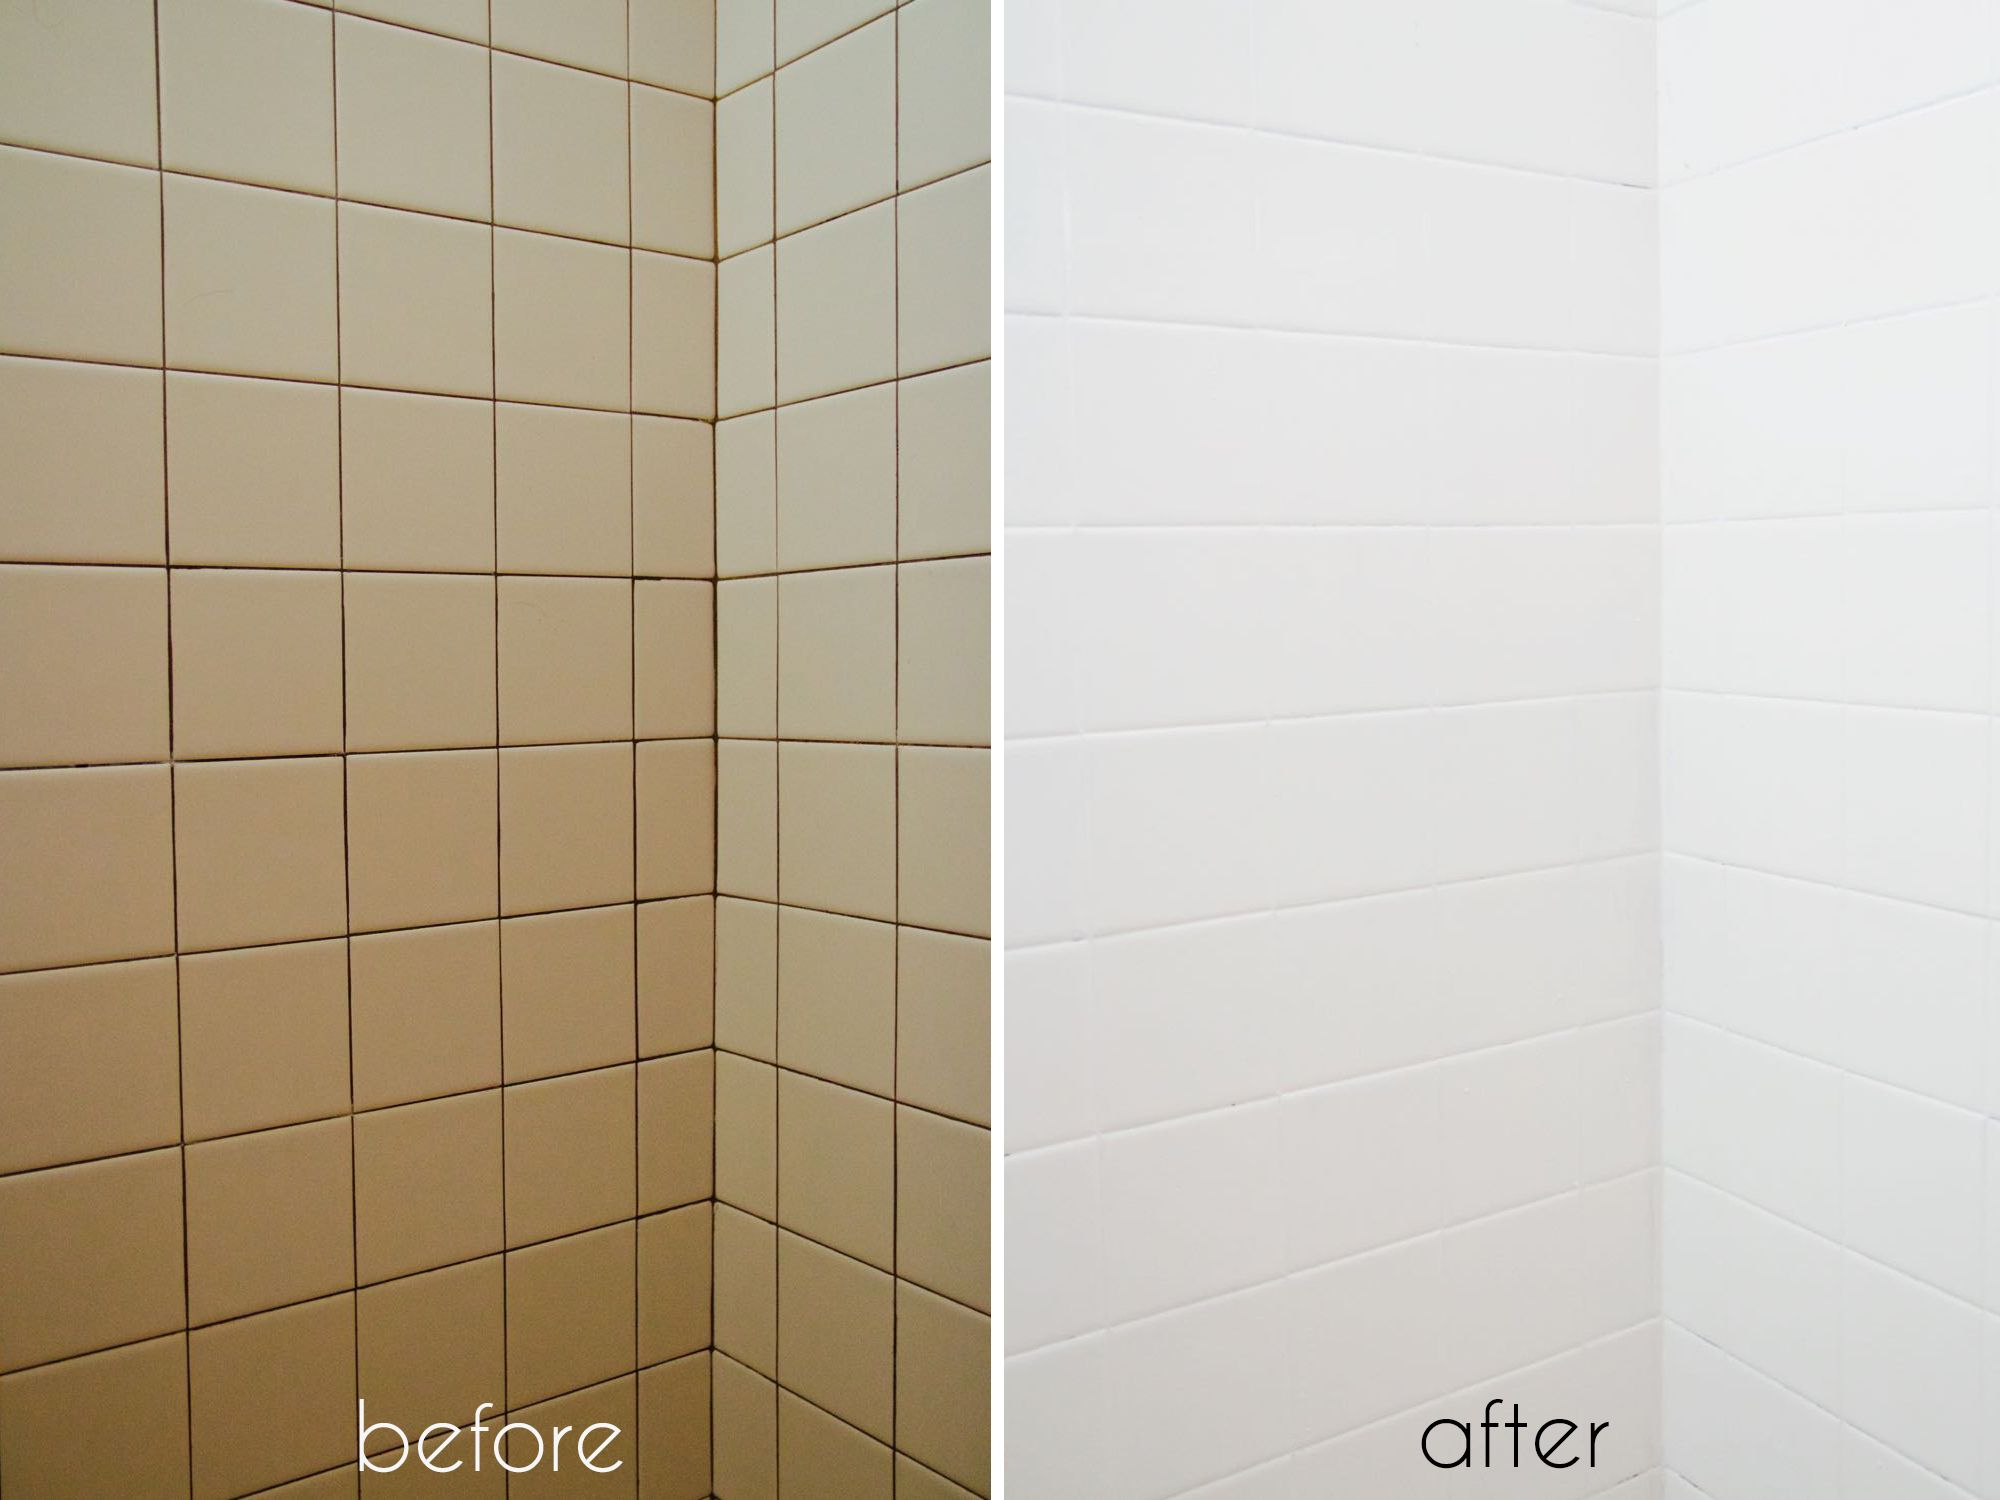 how to instantly modernize ugly, dated tile using epoxy paint